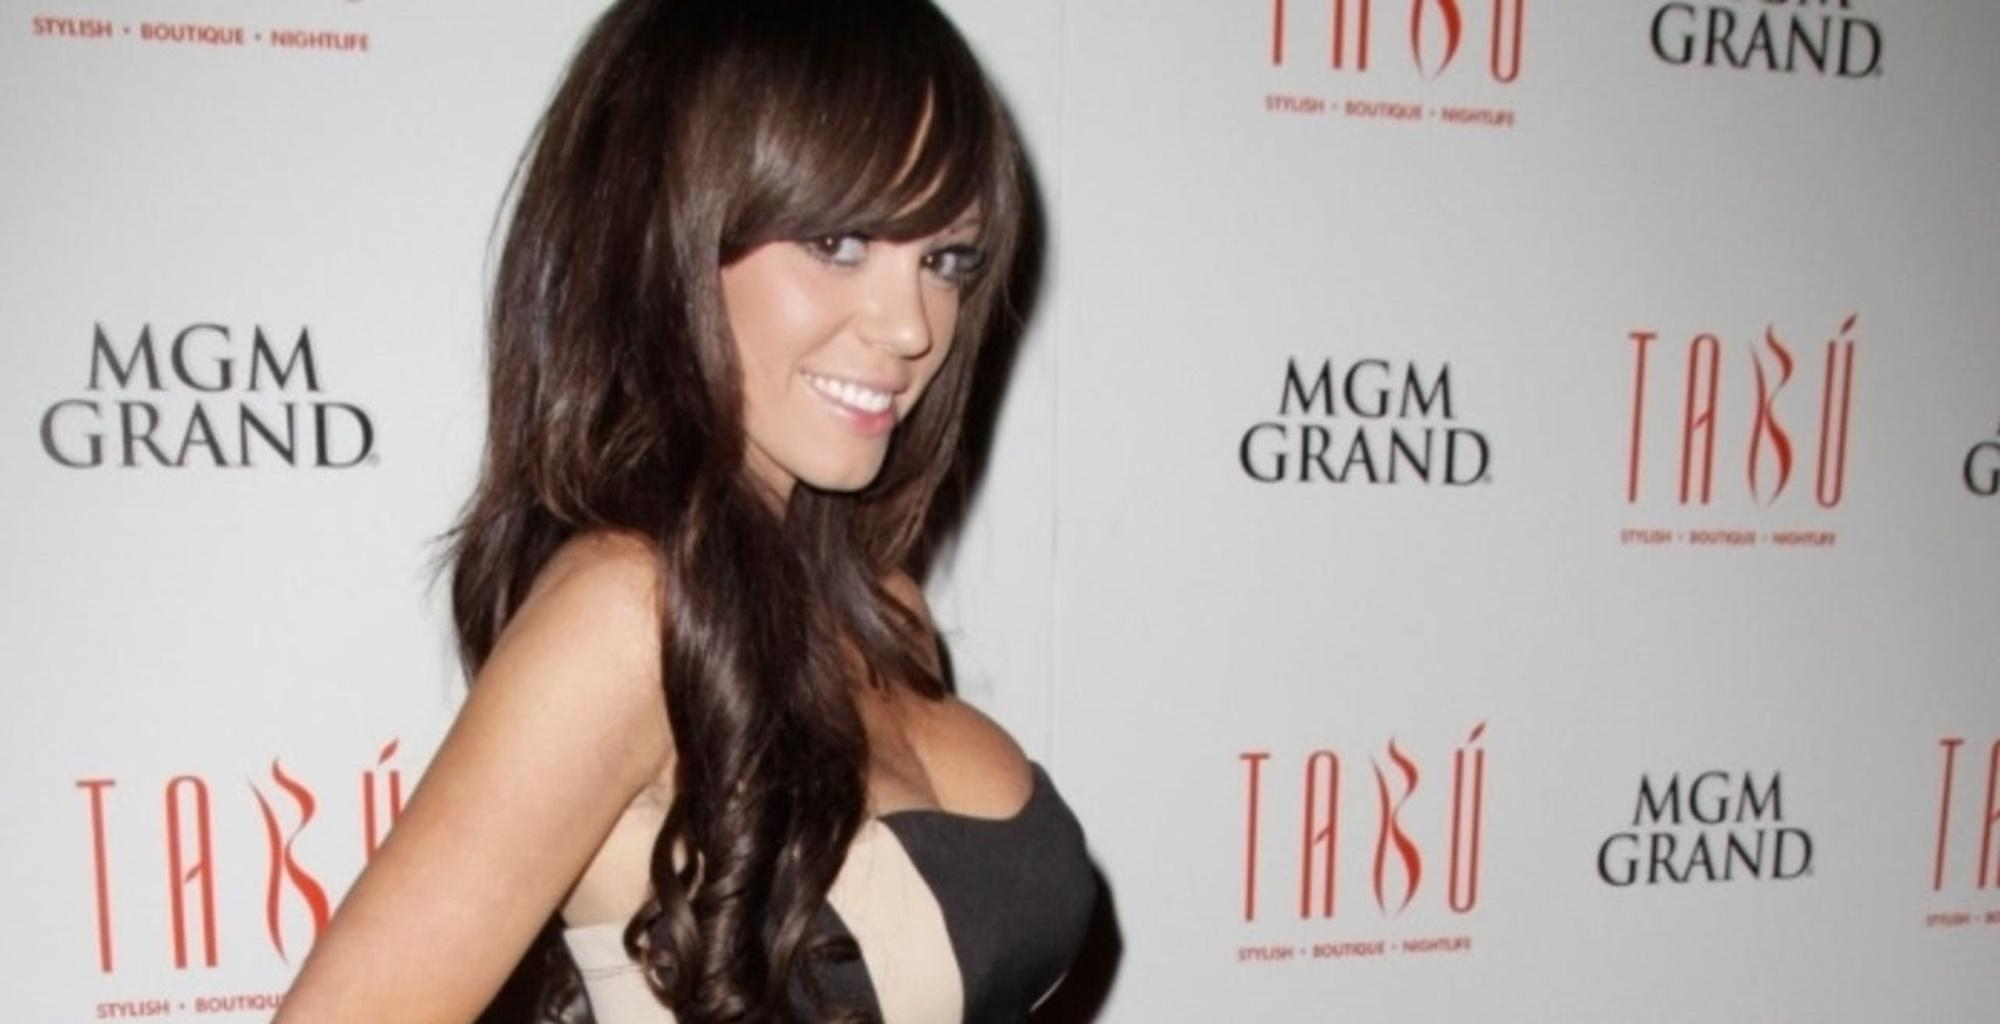 Valerie Mason's Sizzling Pictures Are In High Demand After Her Mugshot Goes Viral